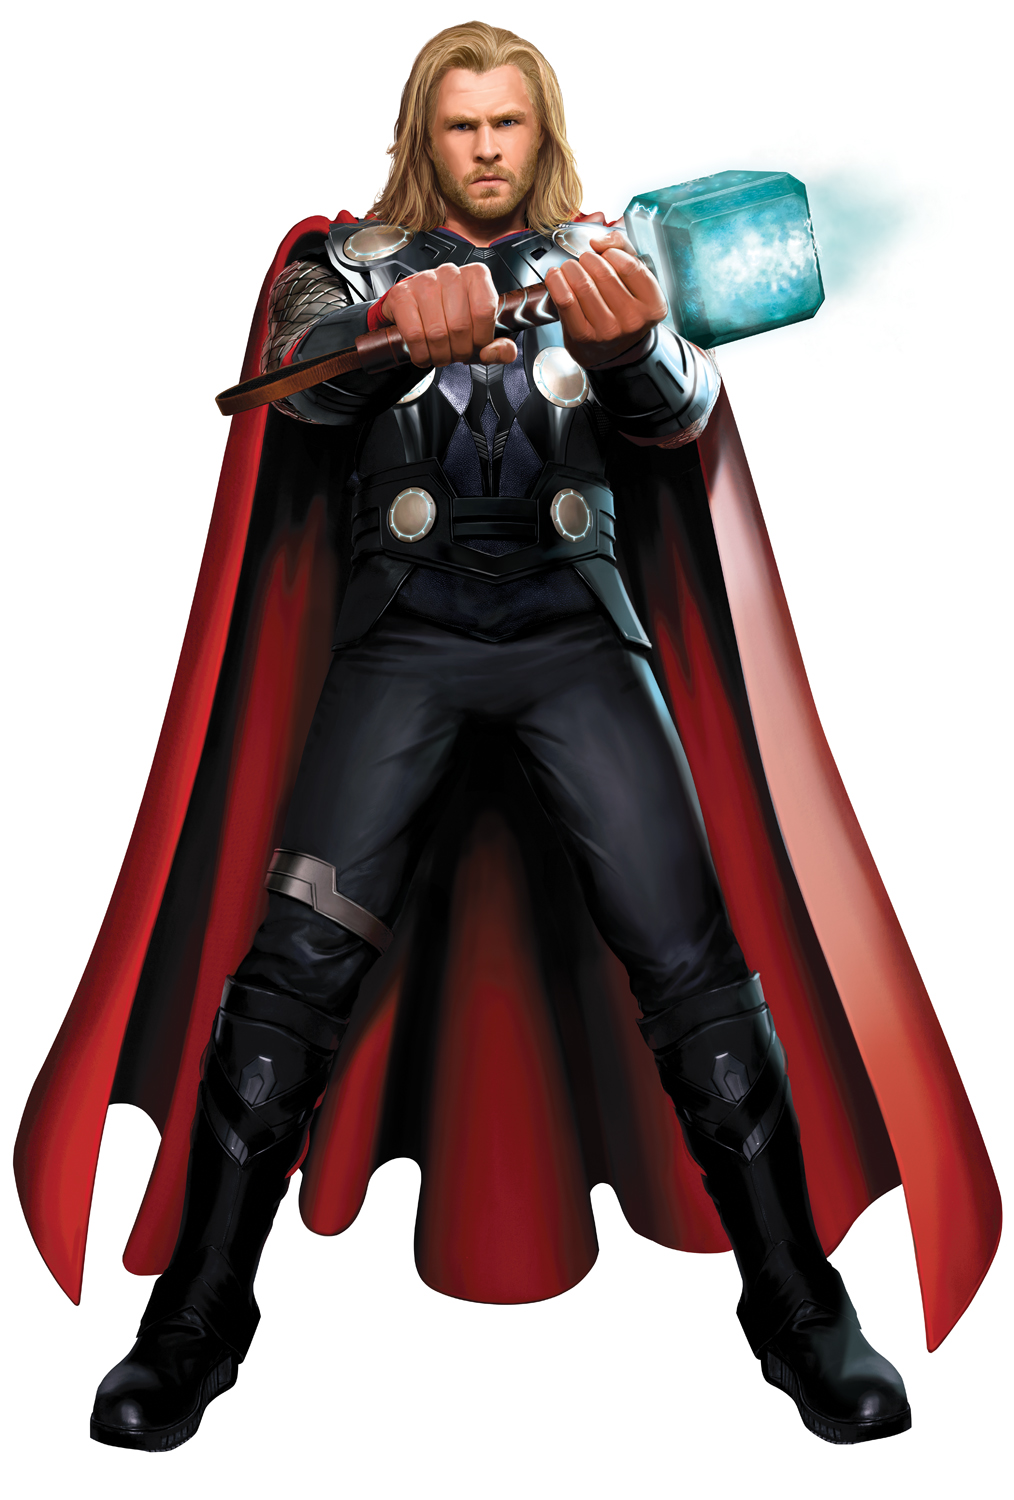 thor_concept_art_chris_hemsworth_02.jpg